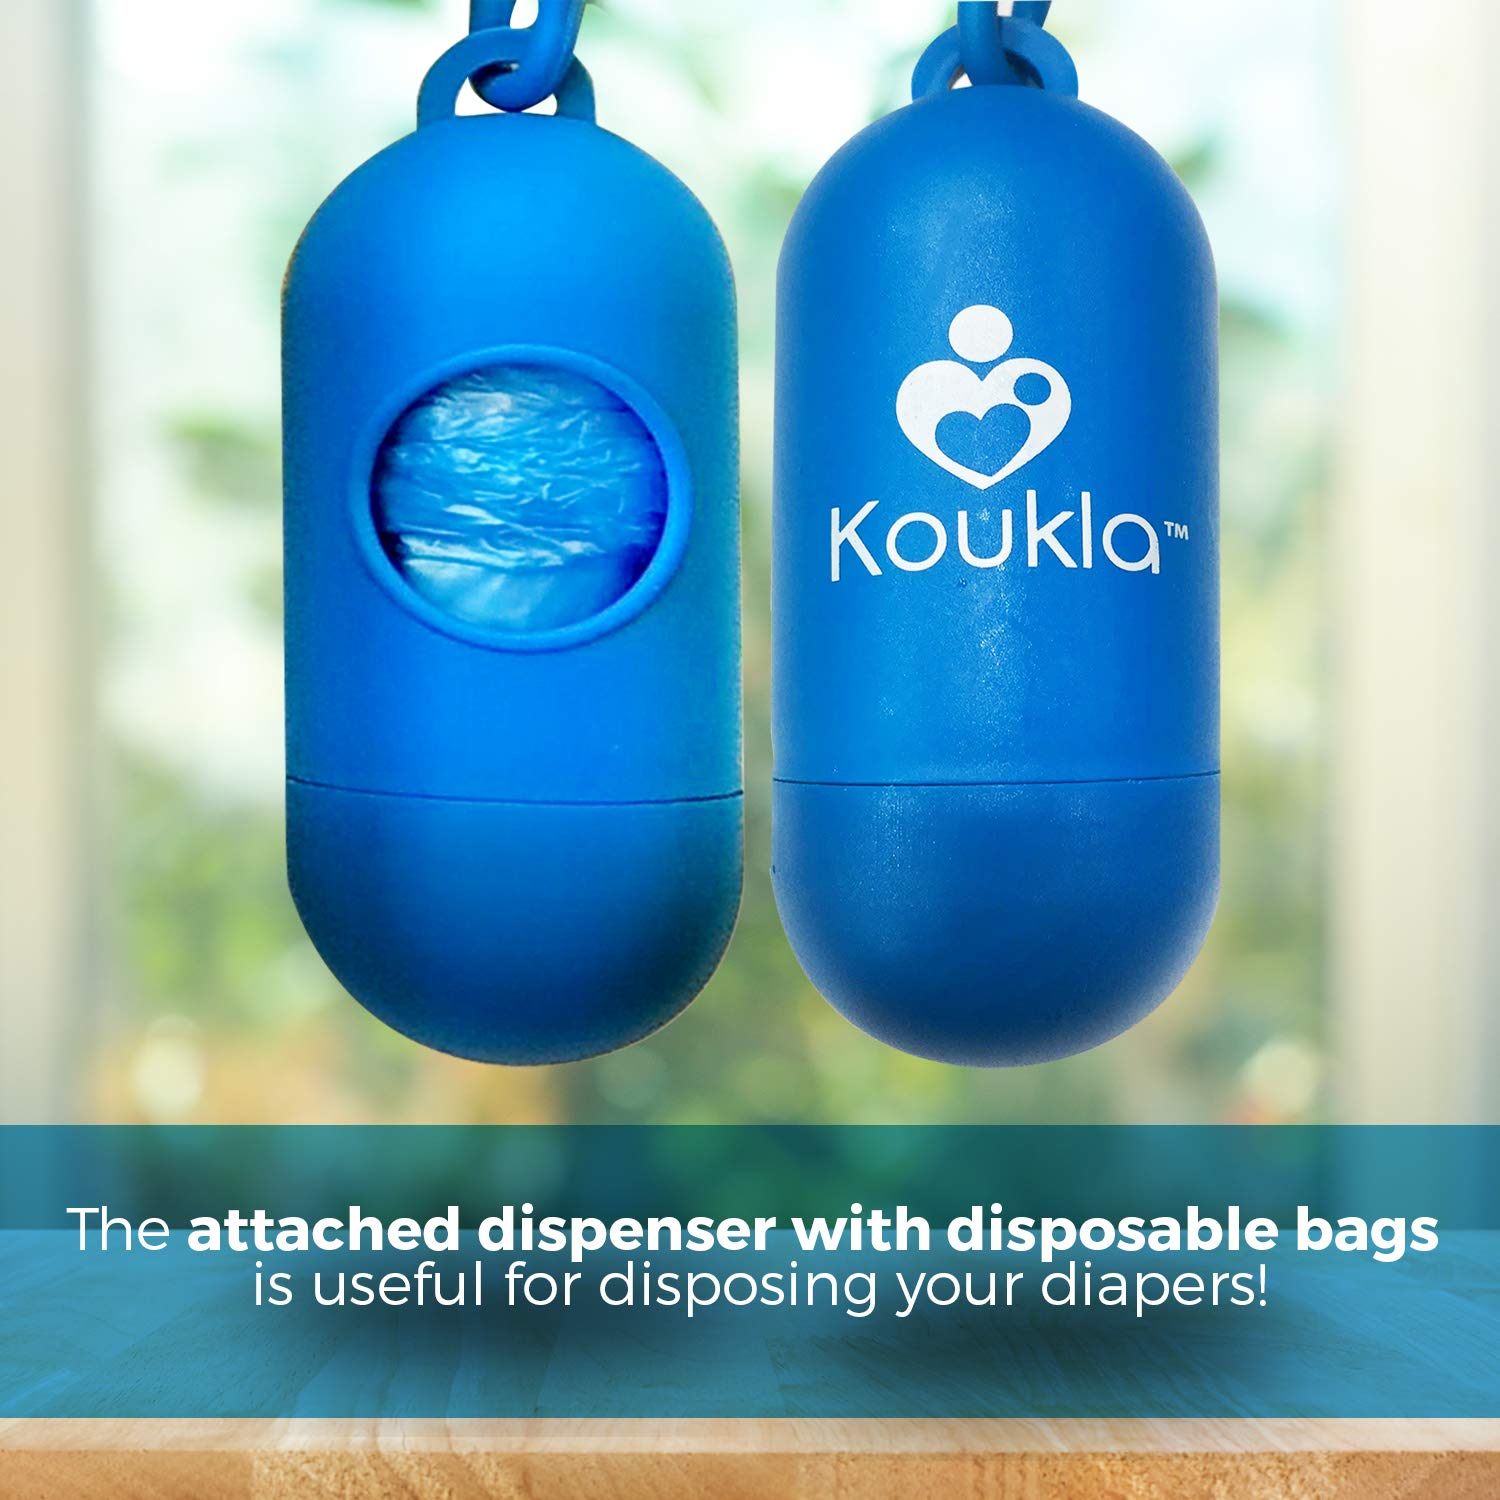 Portable Diaper Changing Pad Clutch Baby Changing Station with Disposable Dirty Diaper Bags and Dispenser Extra Head Cushion Great for Travel Lightweight Pockets for Diapers Wipes Cream Easy to Clean by Koukla (Image #6)